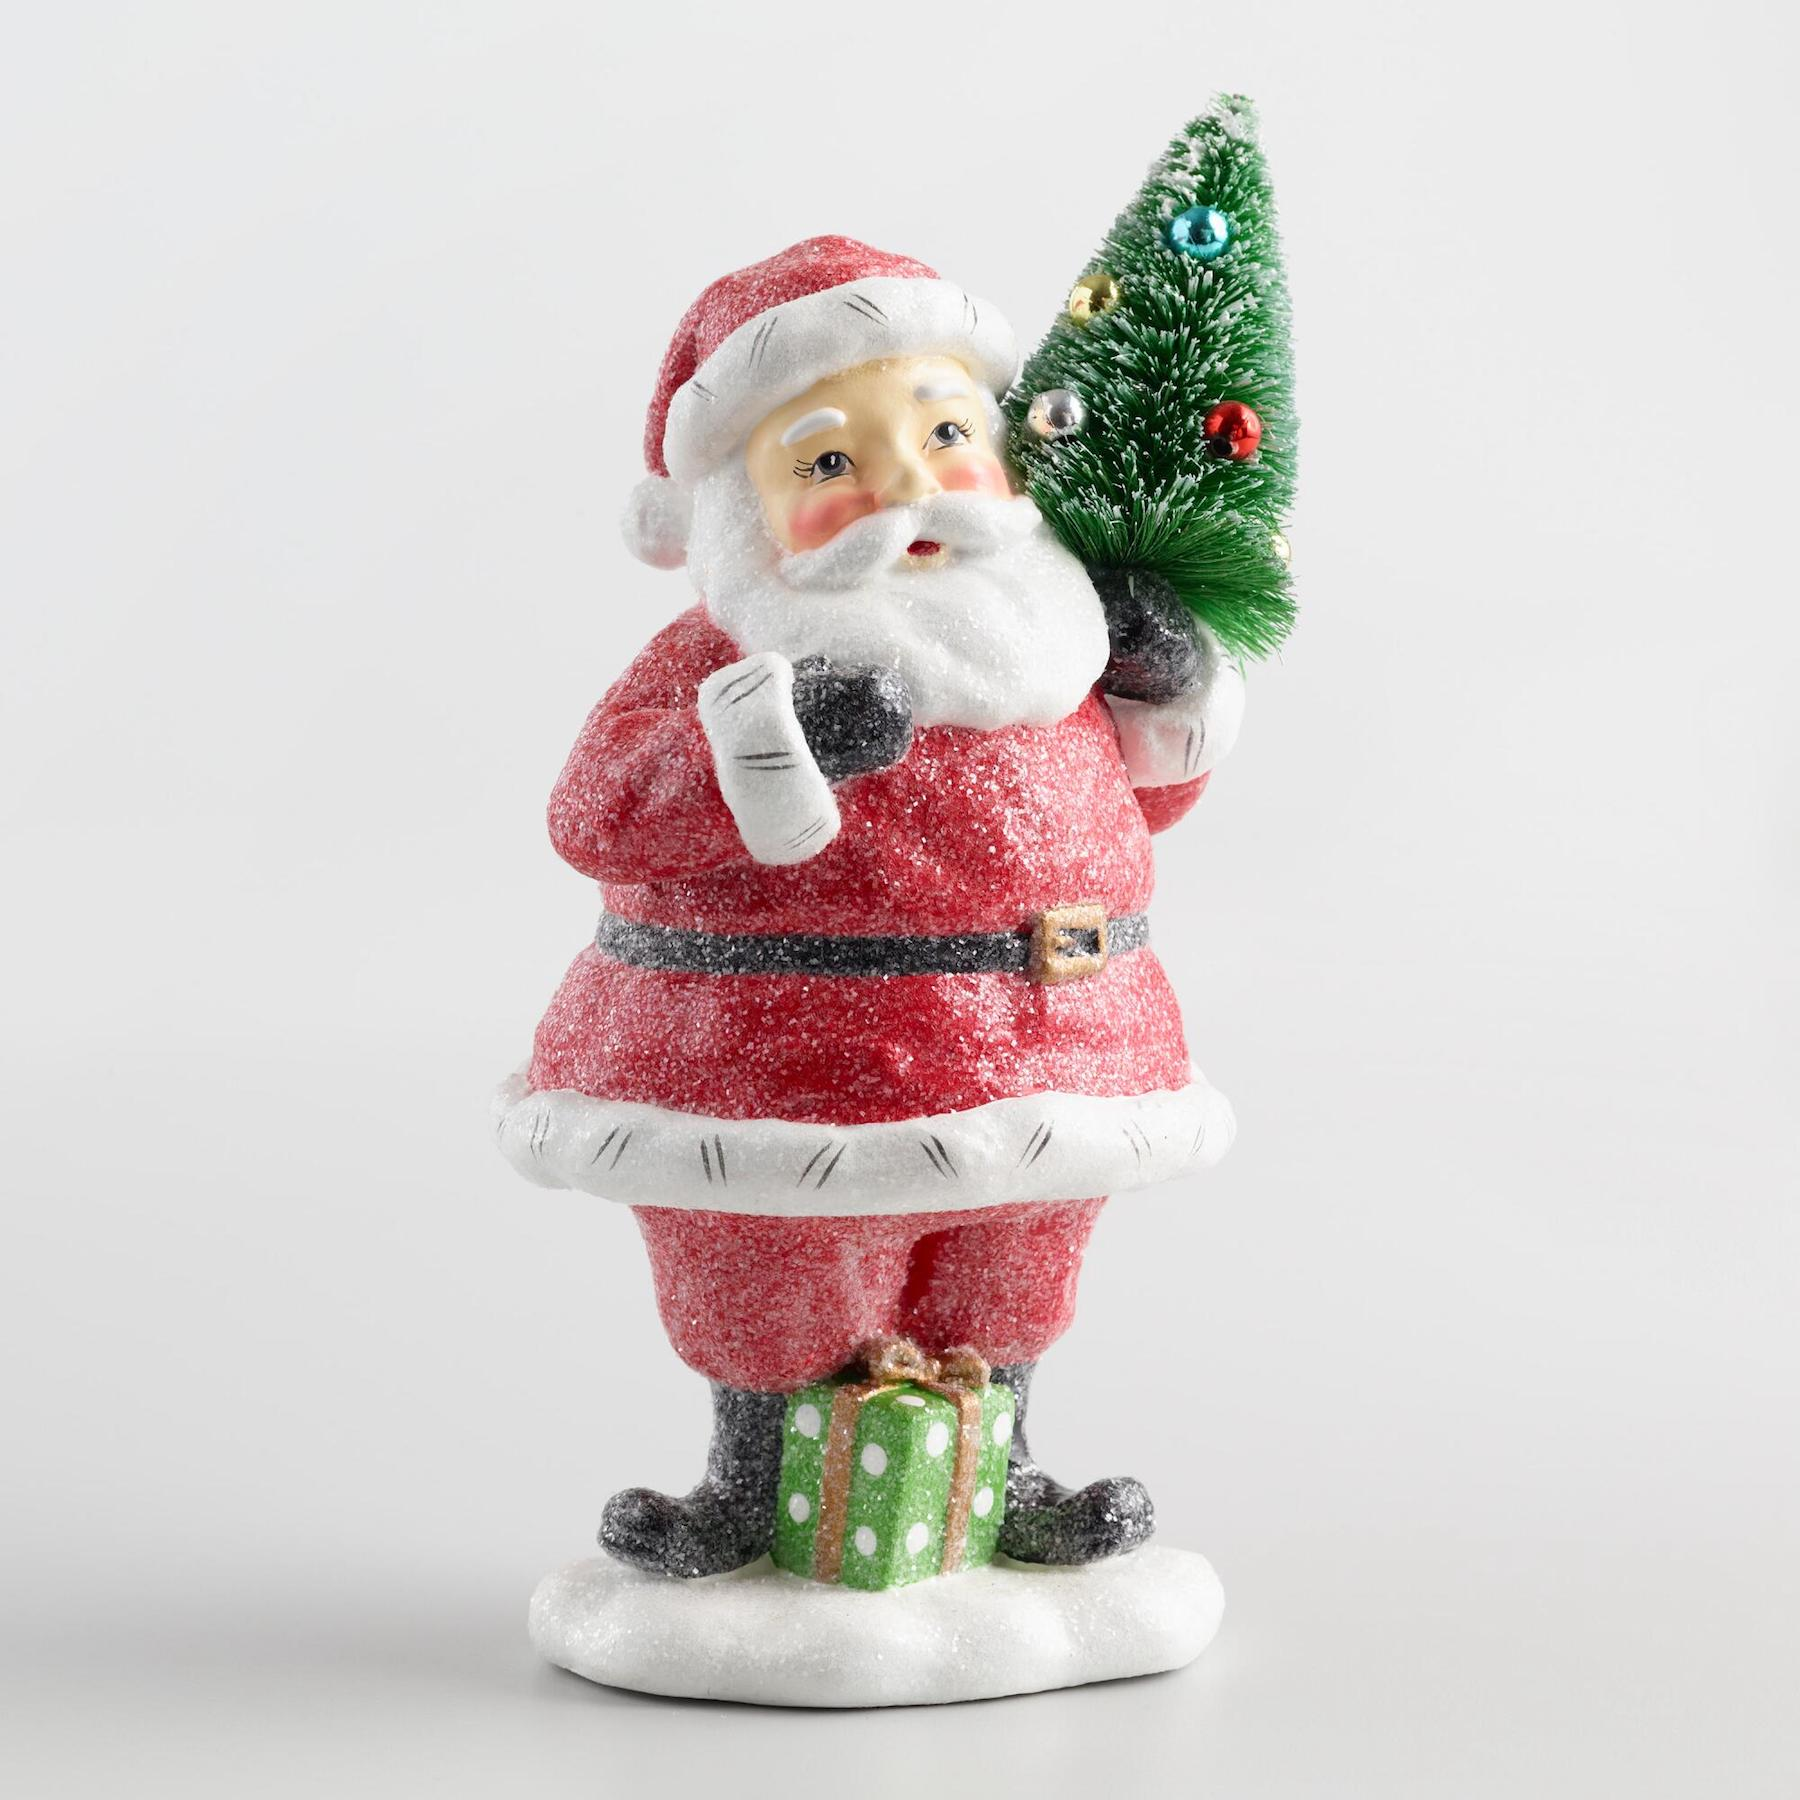 Retro decorative Santa